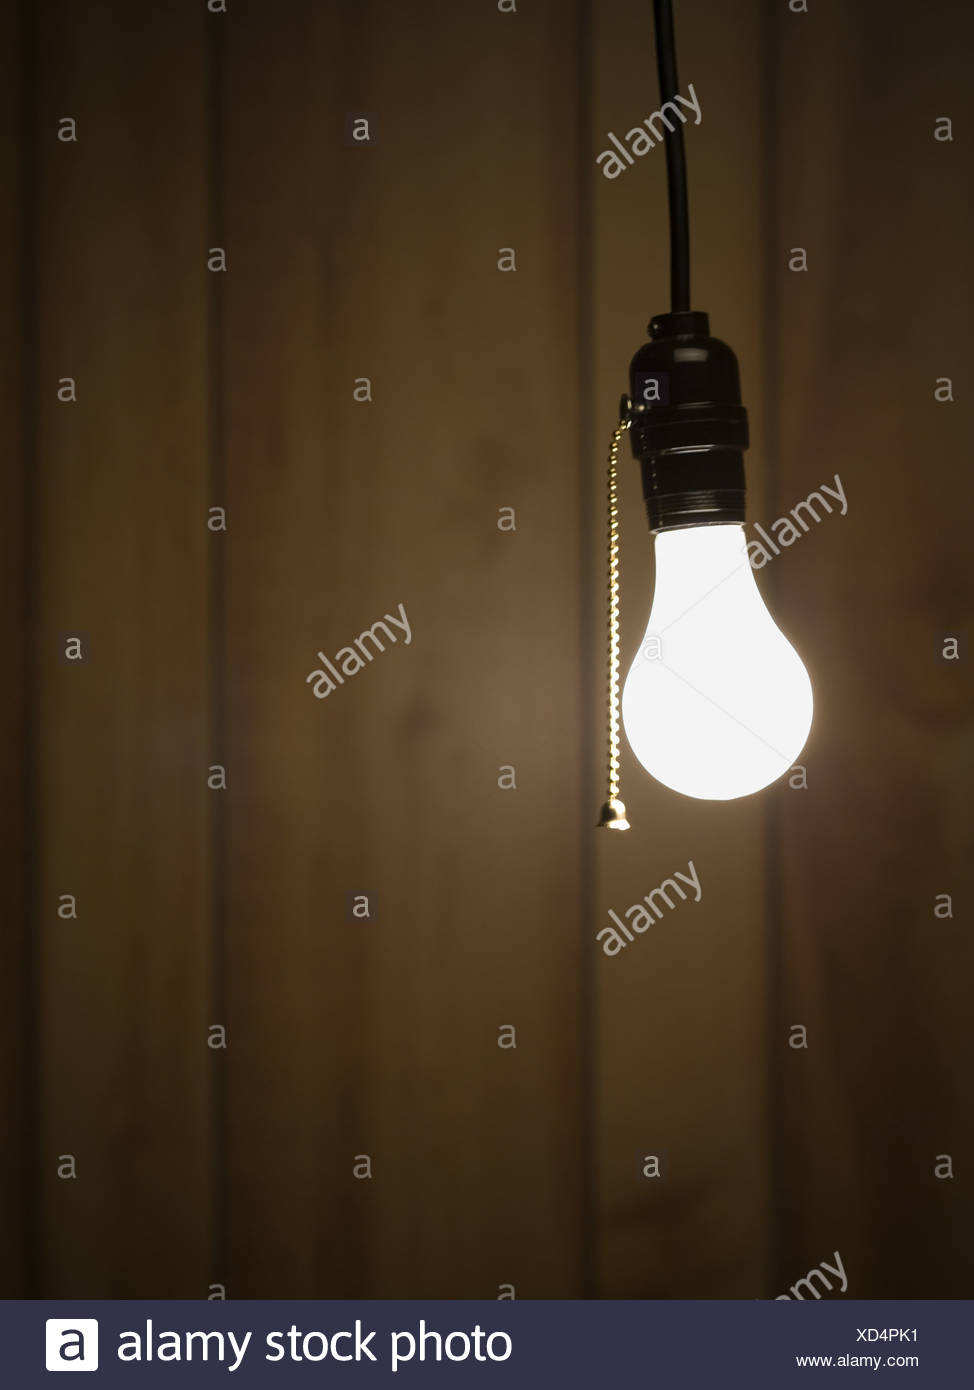 Lightbulb hanging from ceiling stock photo 283462005 alamy lightbulb hanging from ceiling aloadofball Image collections